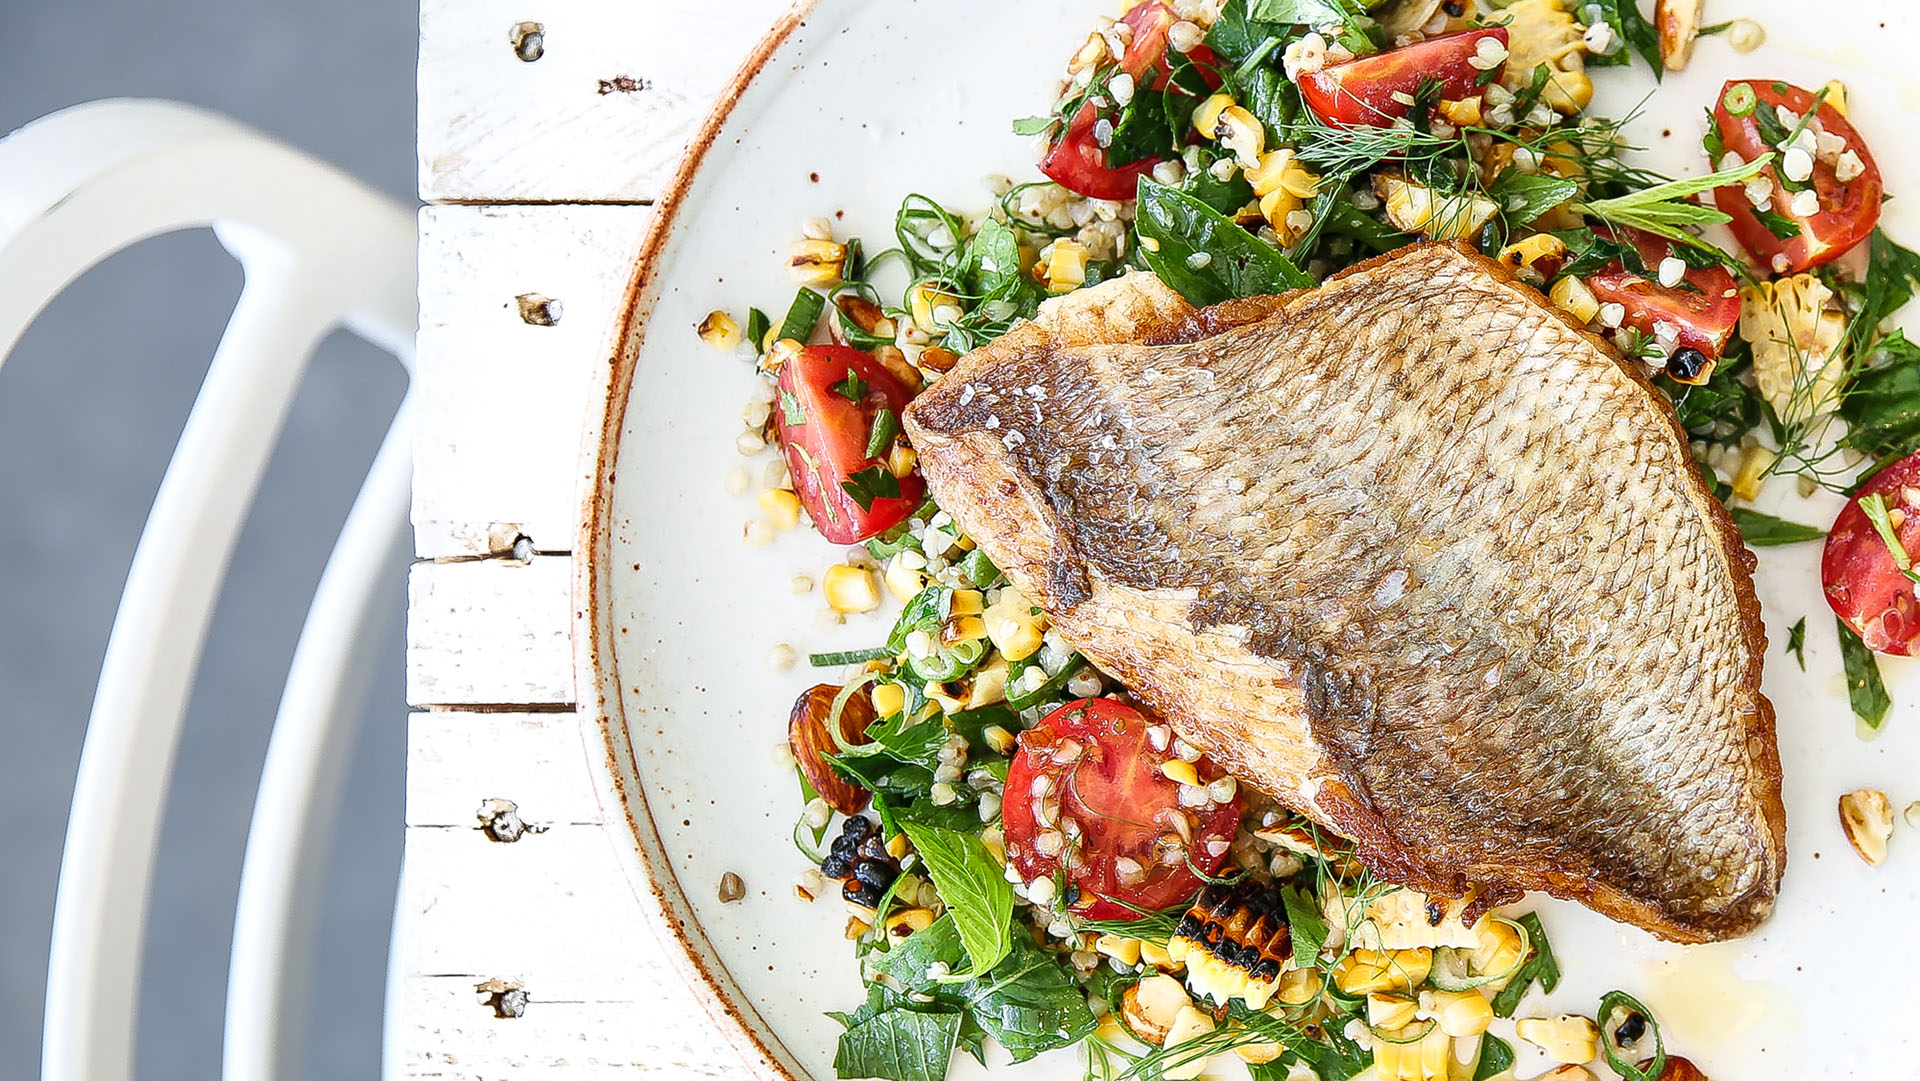 Grilled snapper, charred corn, almond and buckwheat tabouli recipe image